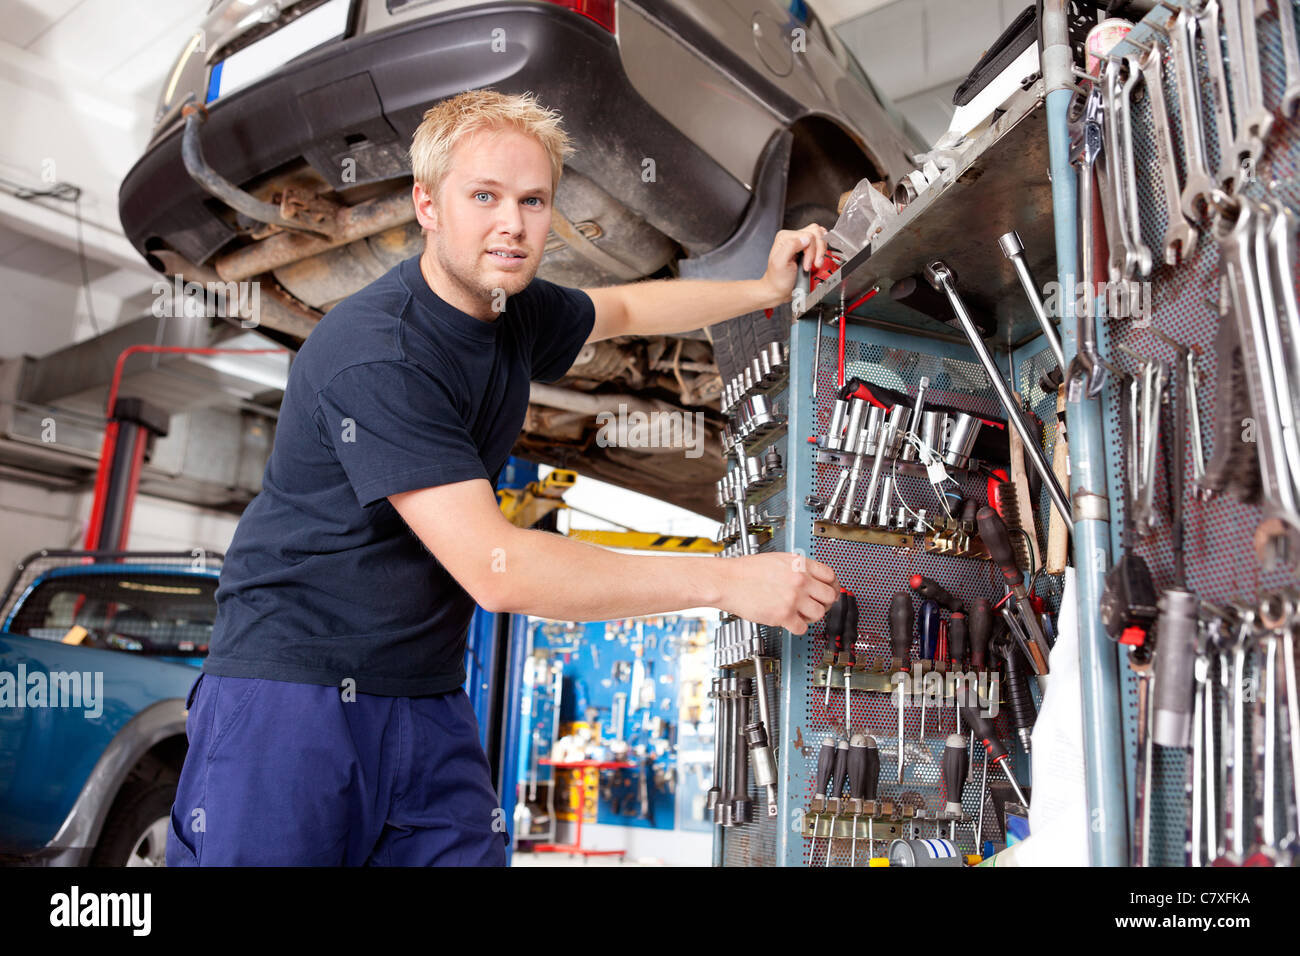 Mechanic standing beside tool chest, looking at the camera - Stock Image